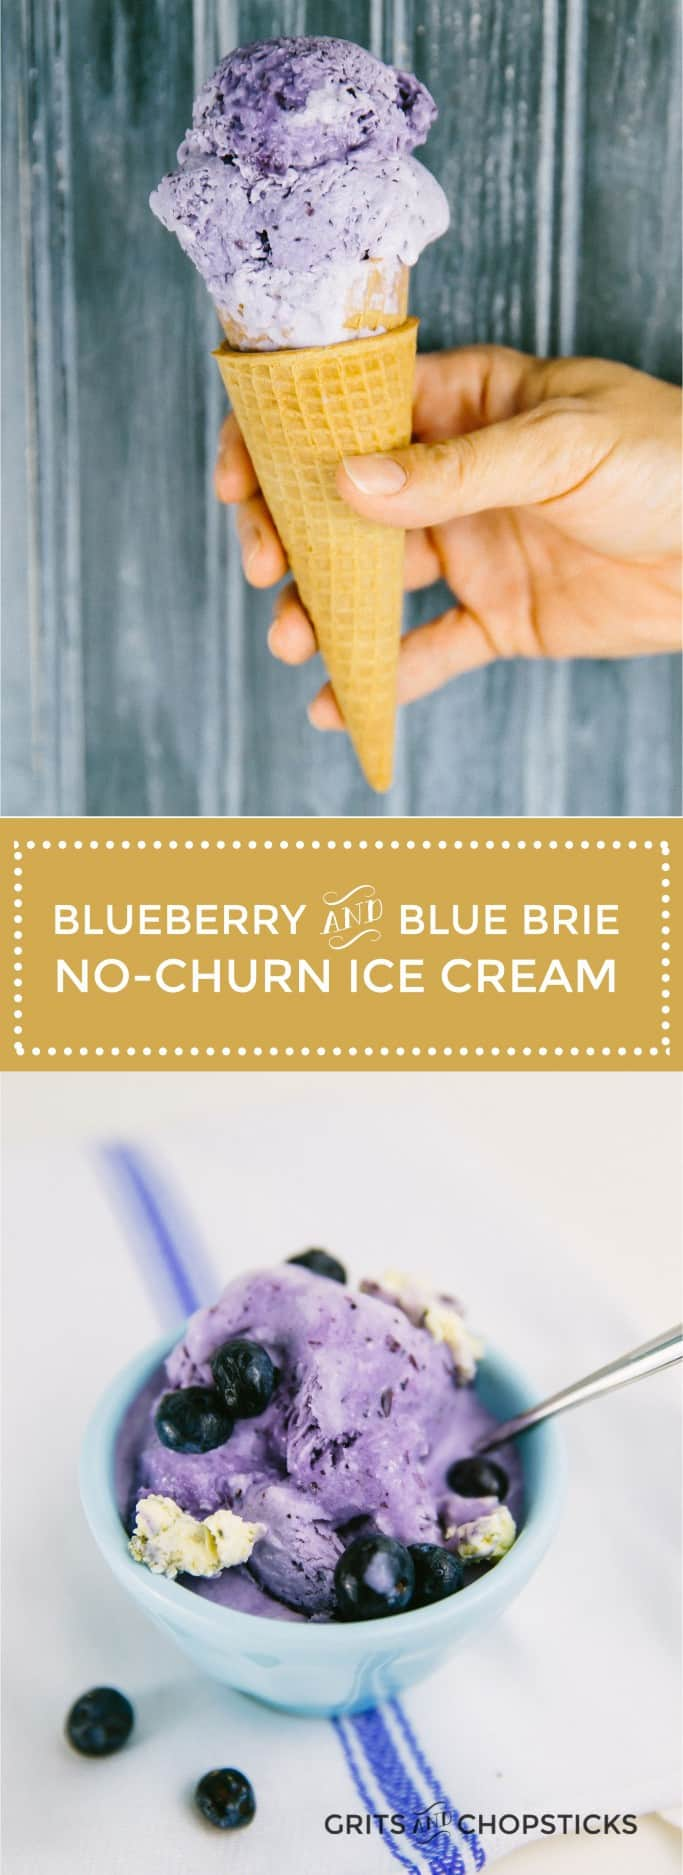 Castello Saga blue brie cheese and blueberry no-churn ice cream is easy to make and a surprisingly delicious combination of flavors